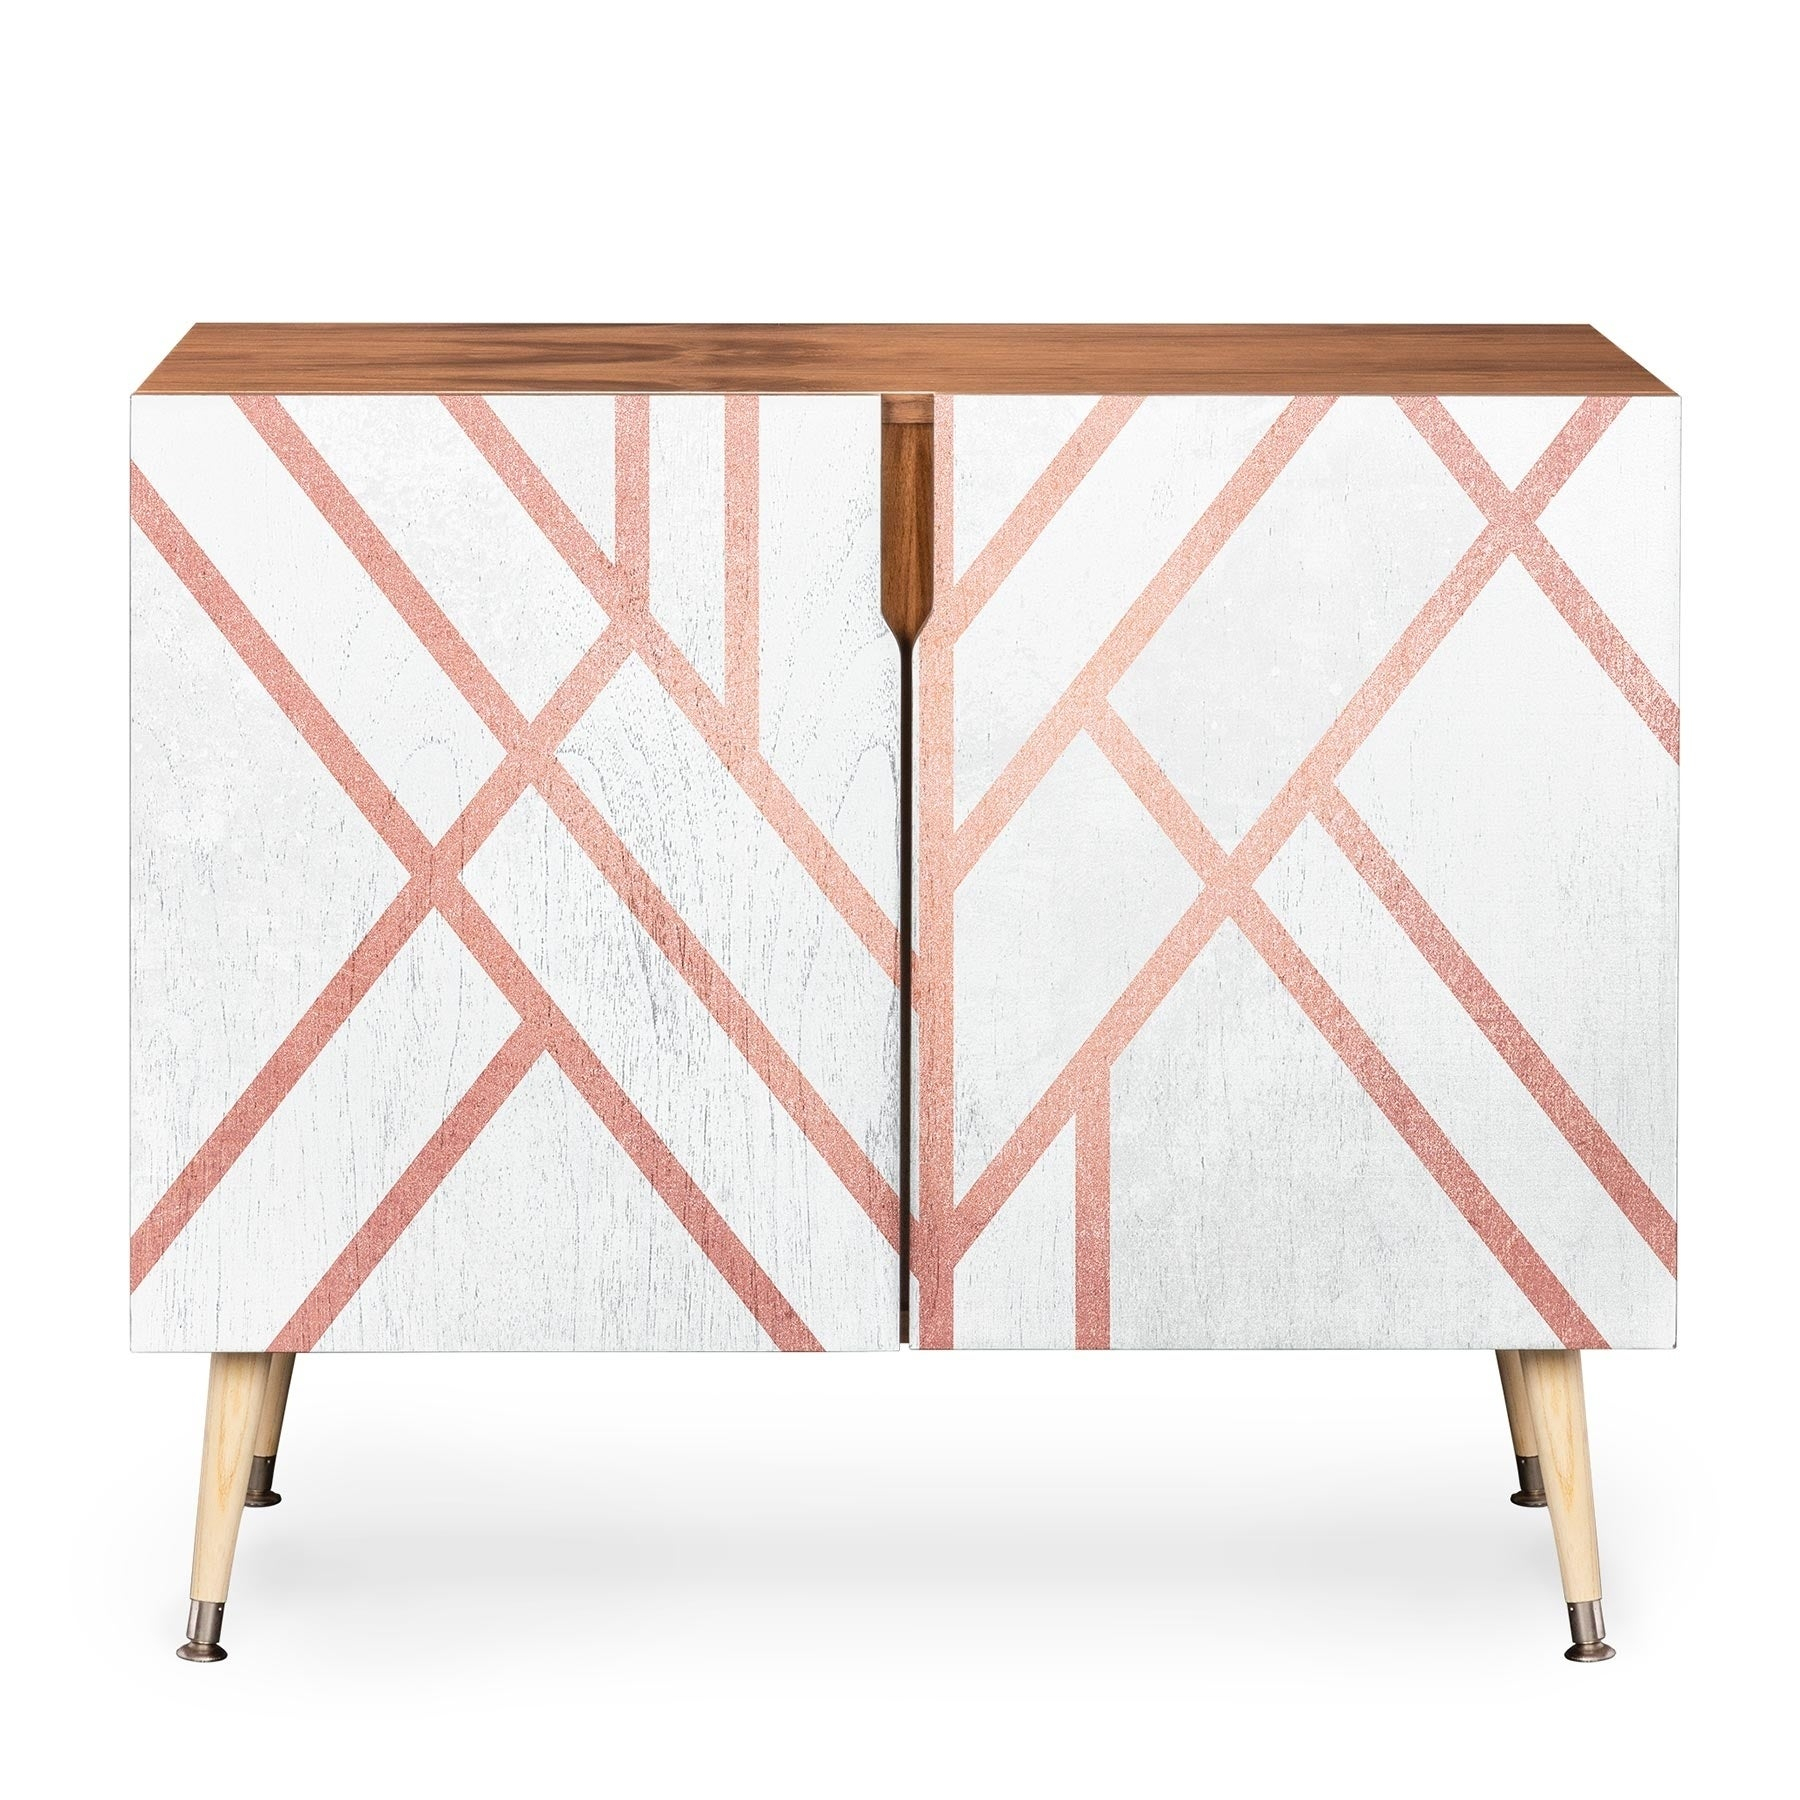 Deny Designs Pink And White Geometric Credenza (Birch Or Walnut, 3 Leg Options) Inside Line Geo Credenzas (View 10 of 30)